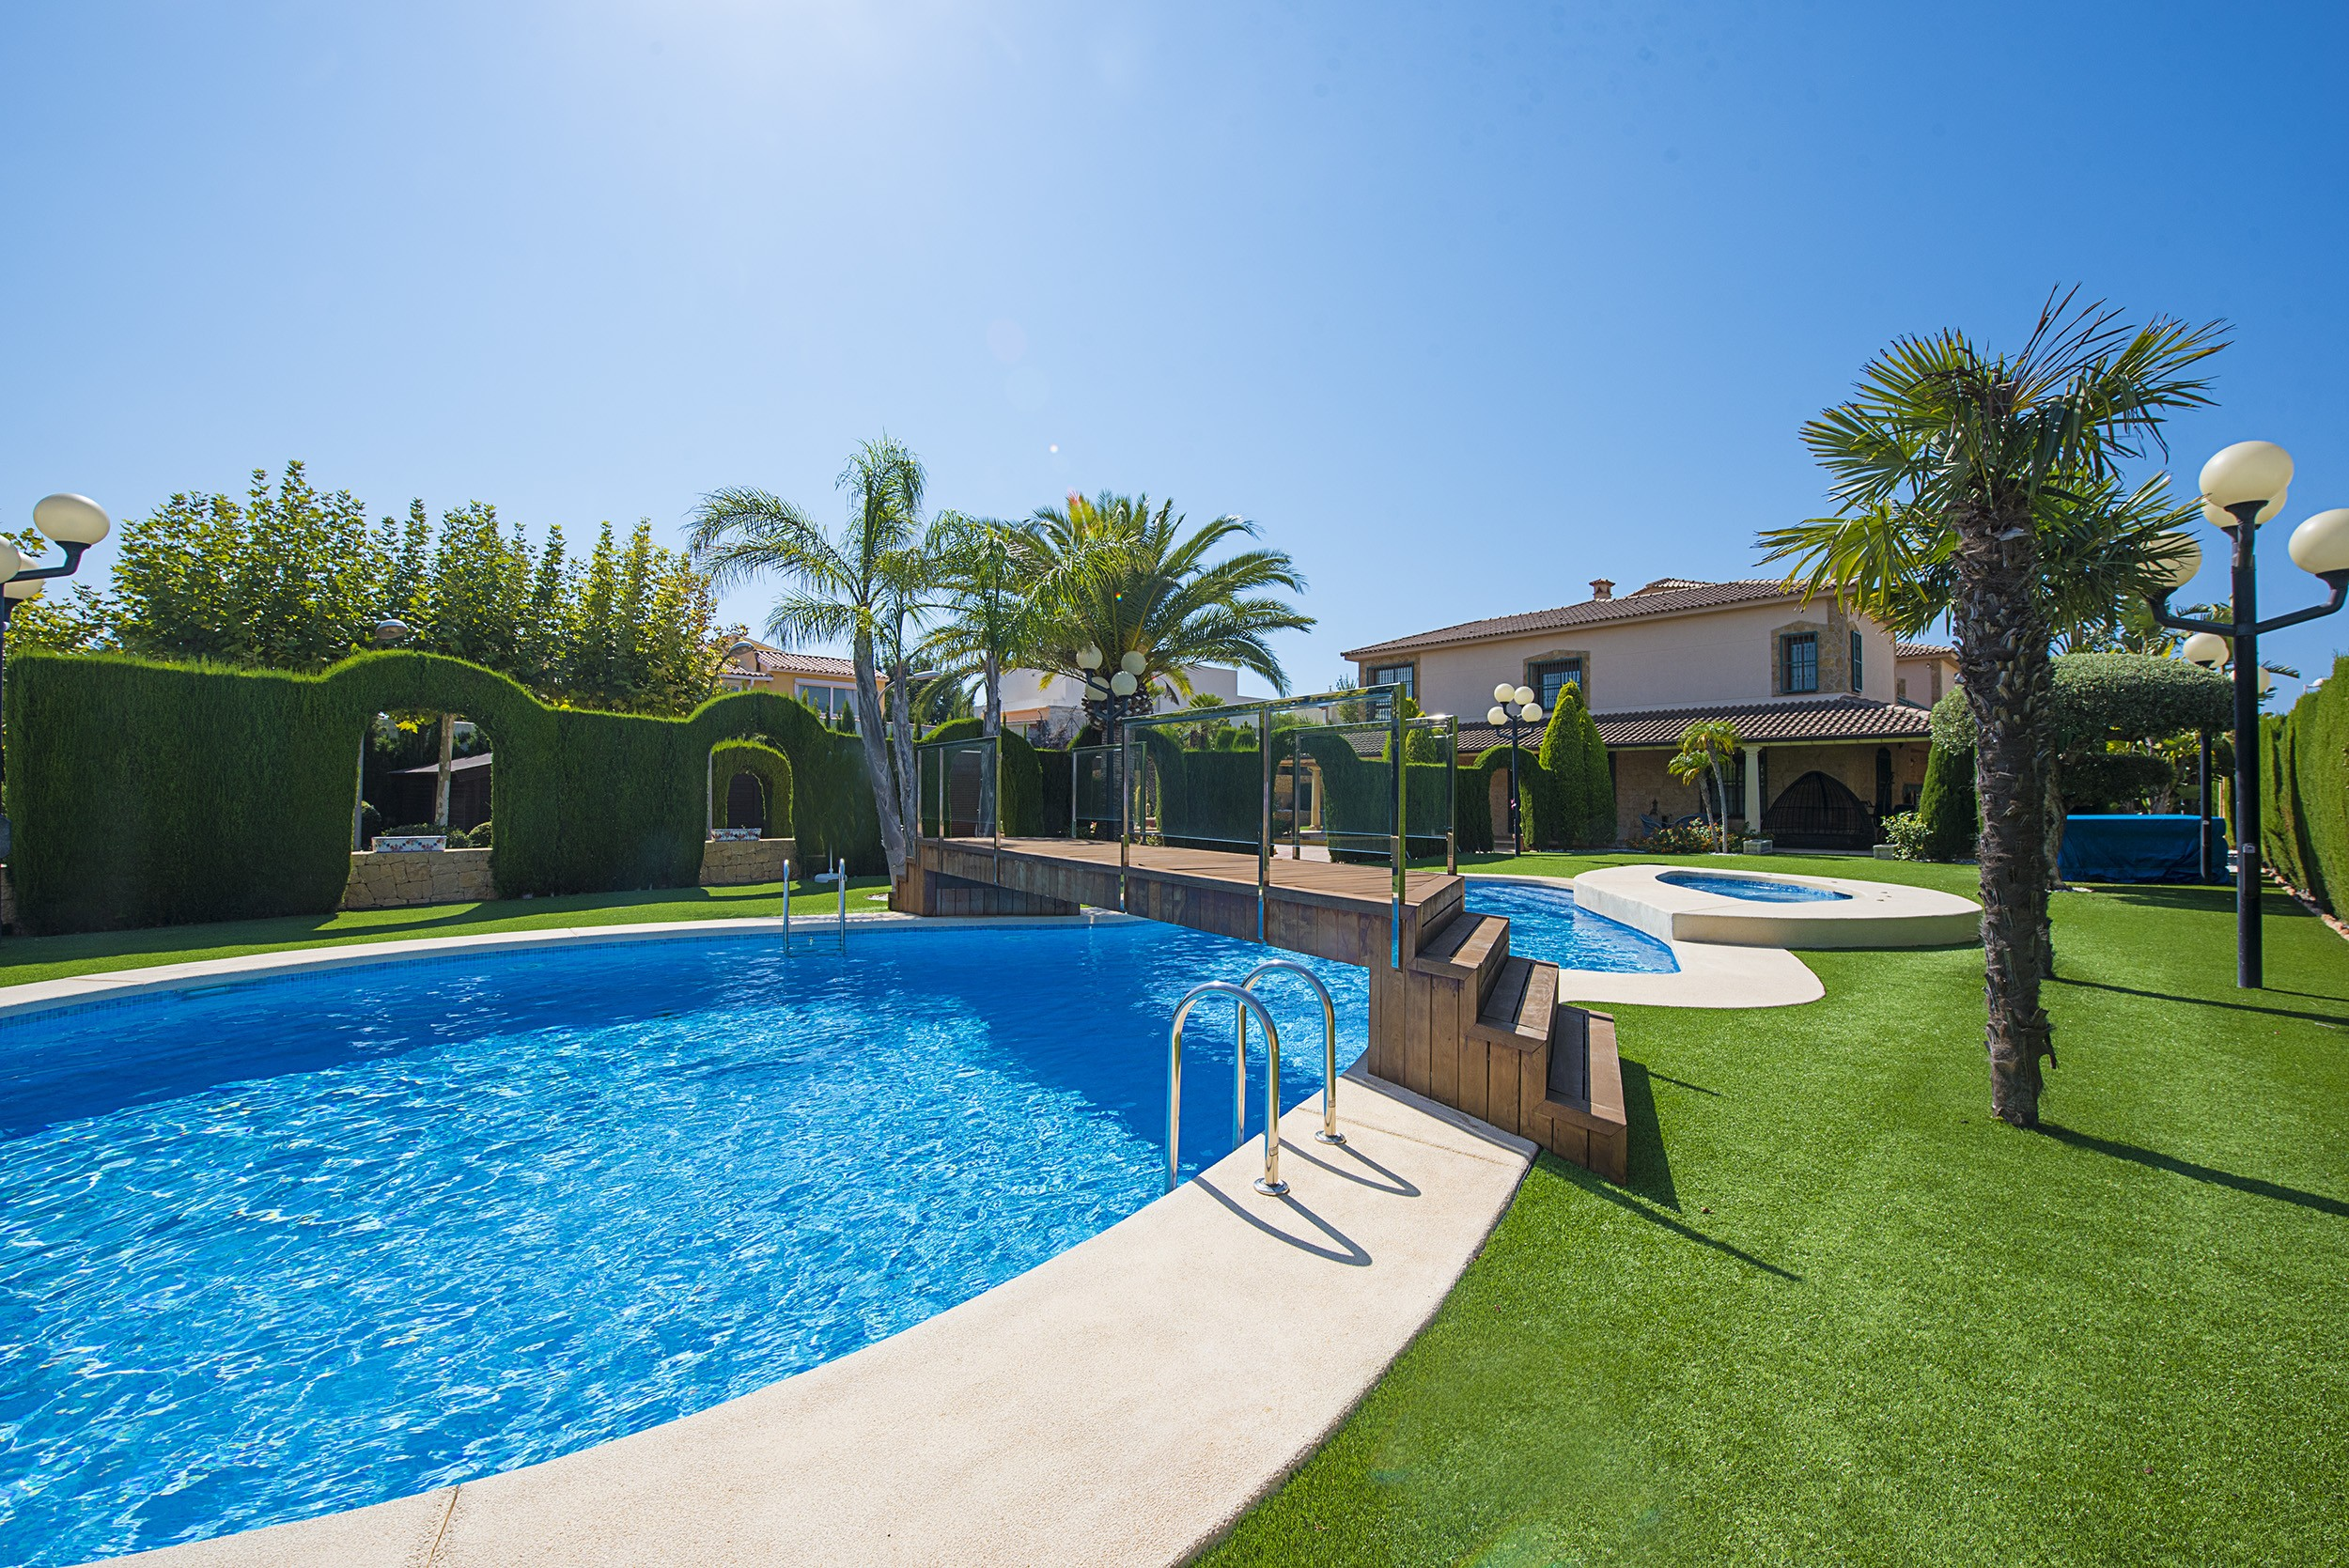 Elegant CALPE Rental Villa Private Pool Alicante Costa Blanca